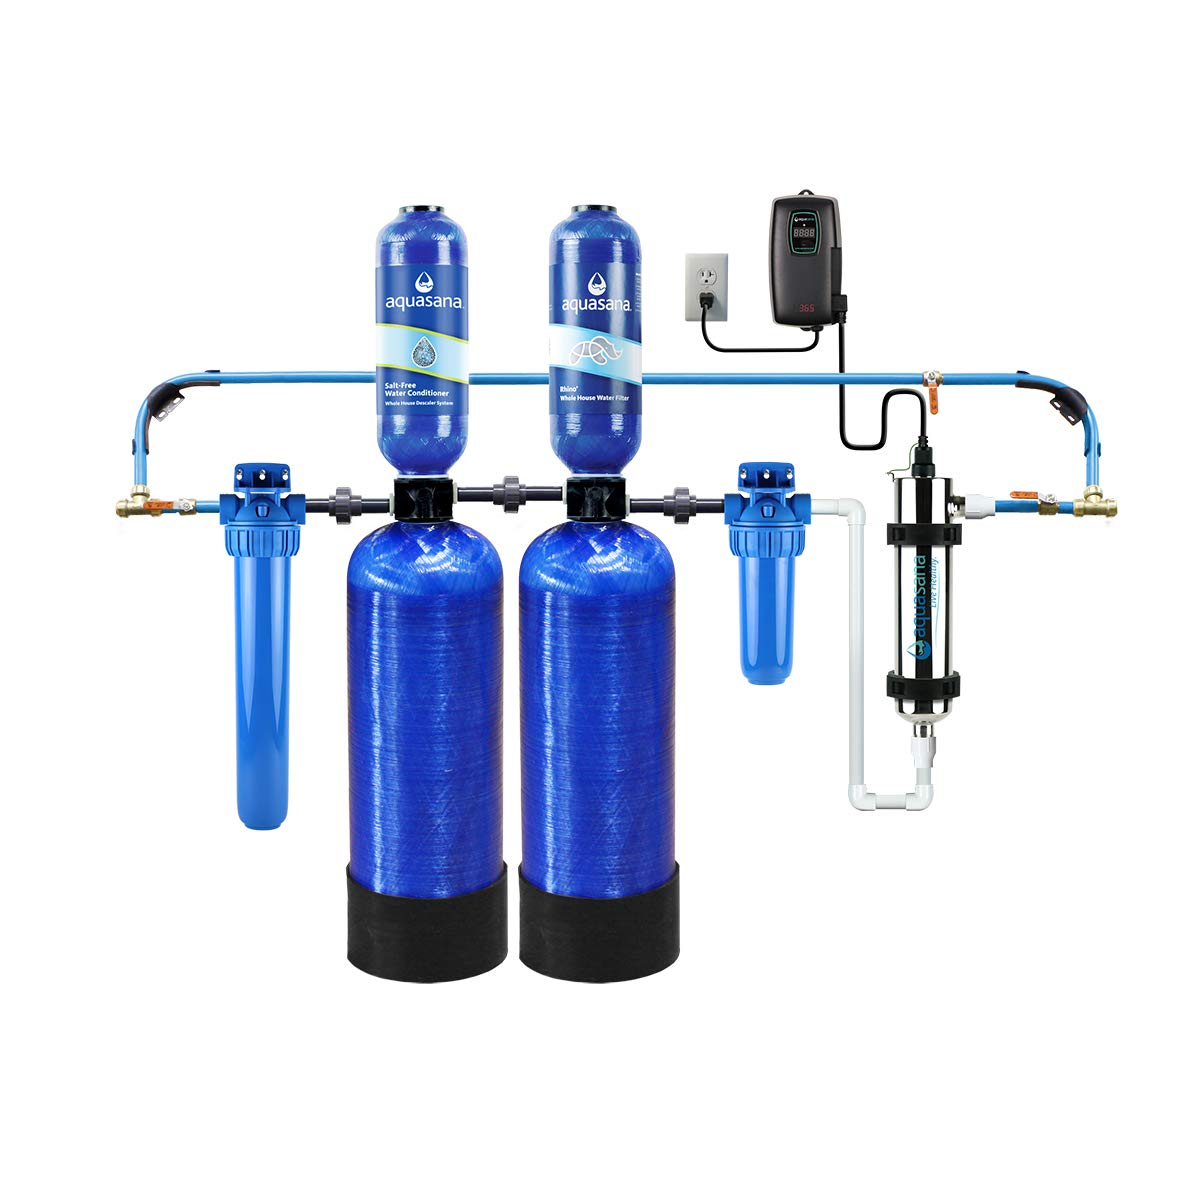 Aquasana Whole House Well Water Filter System w/ UV Purifier & Salt-Free Descaler - Filters Sediment & 97% Of Chlorine